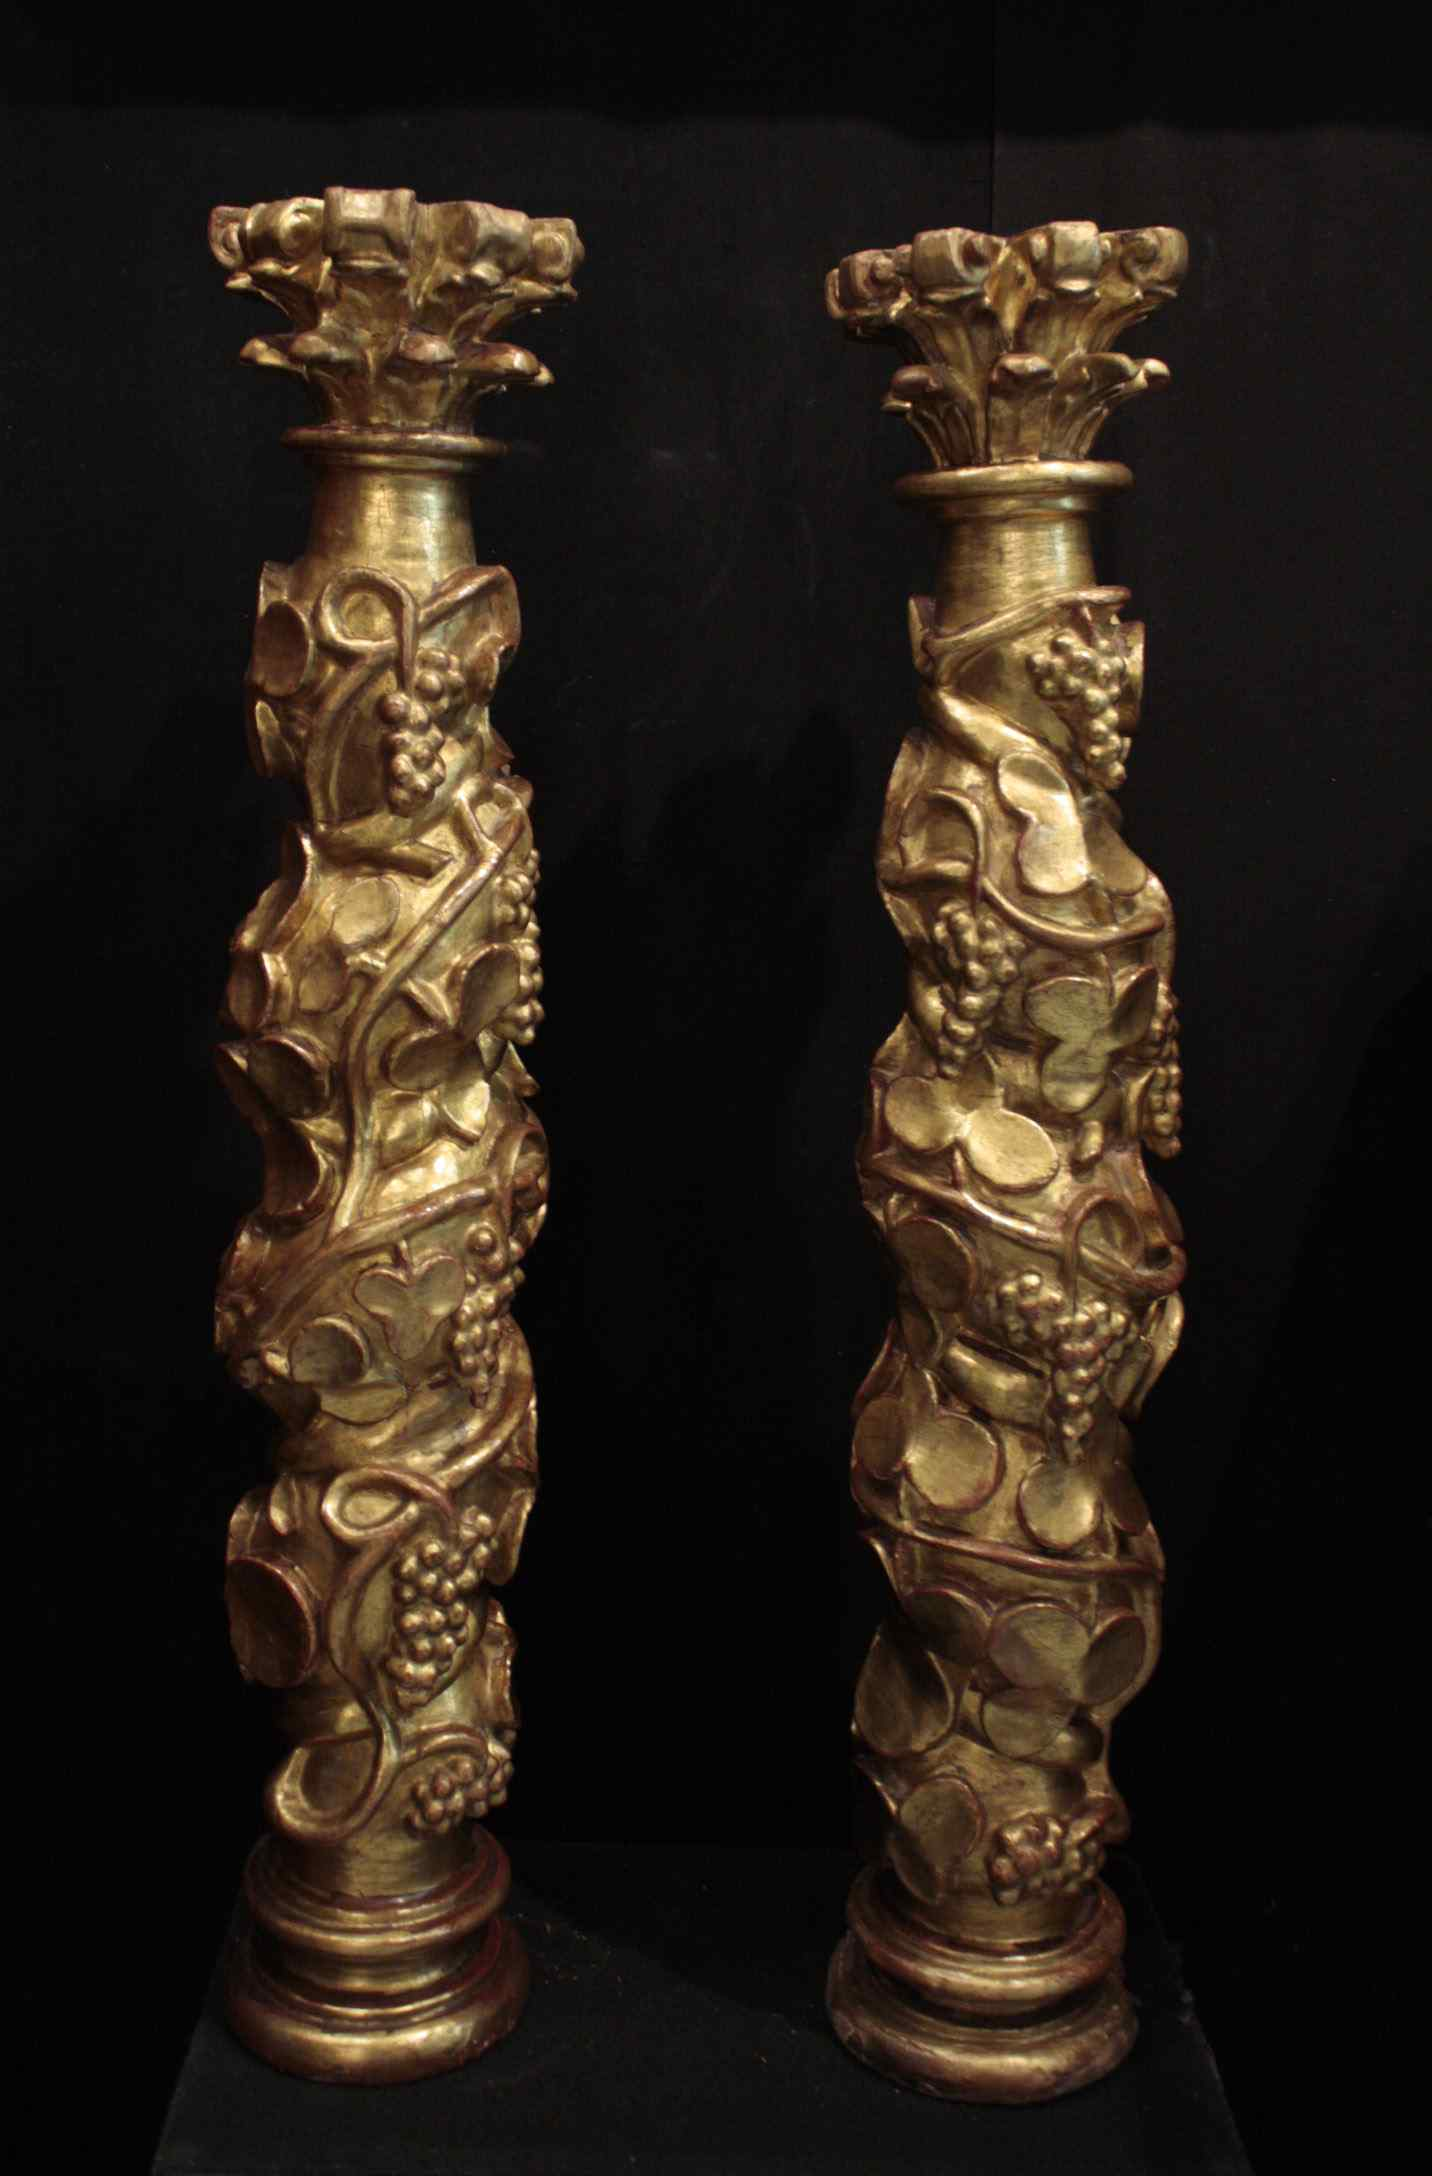 Pair of golden columns, Spain, 17th century